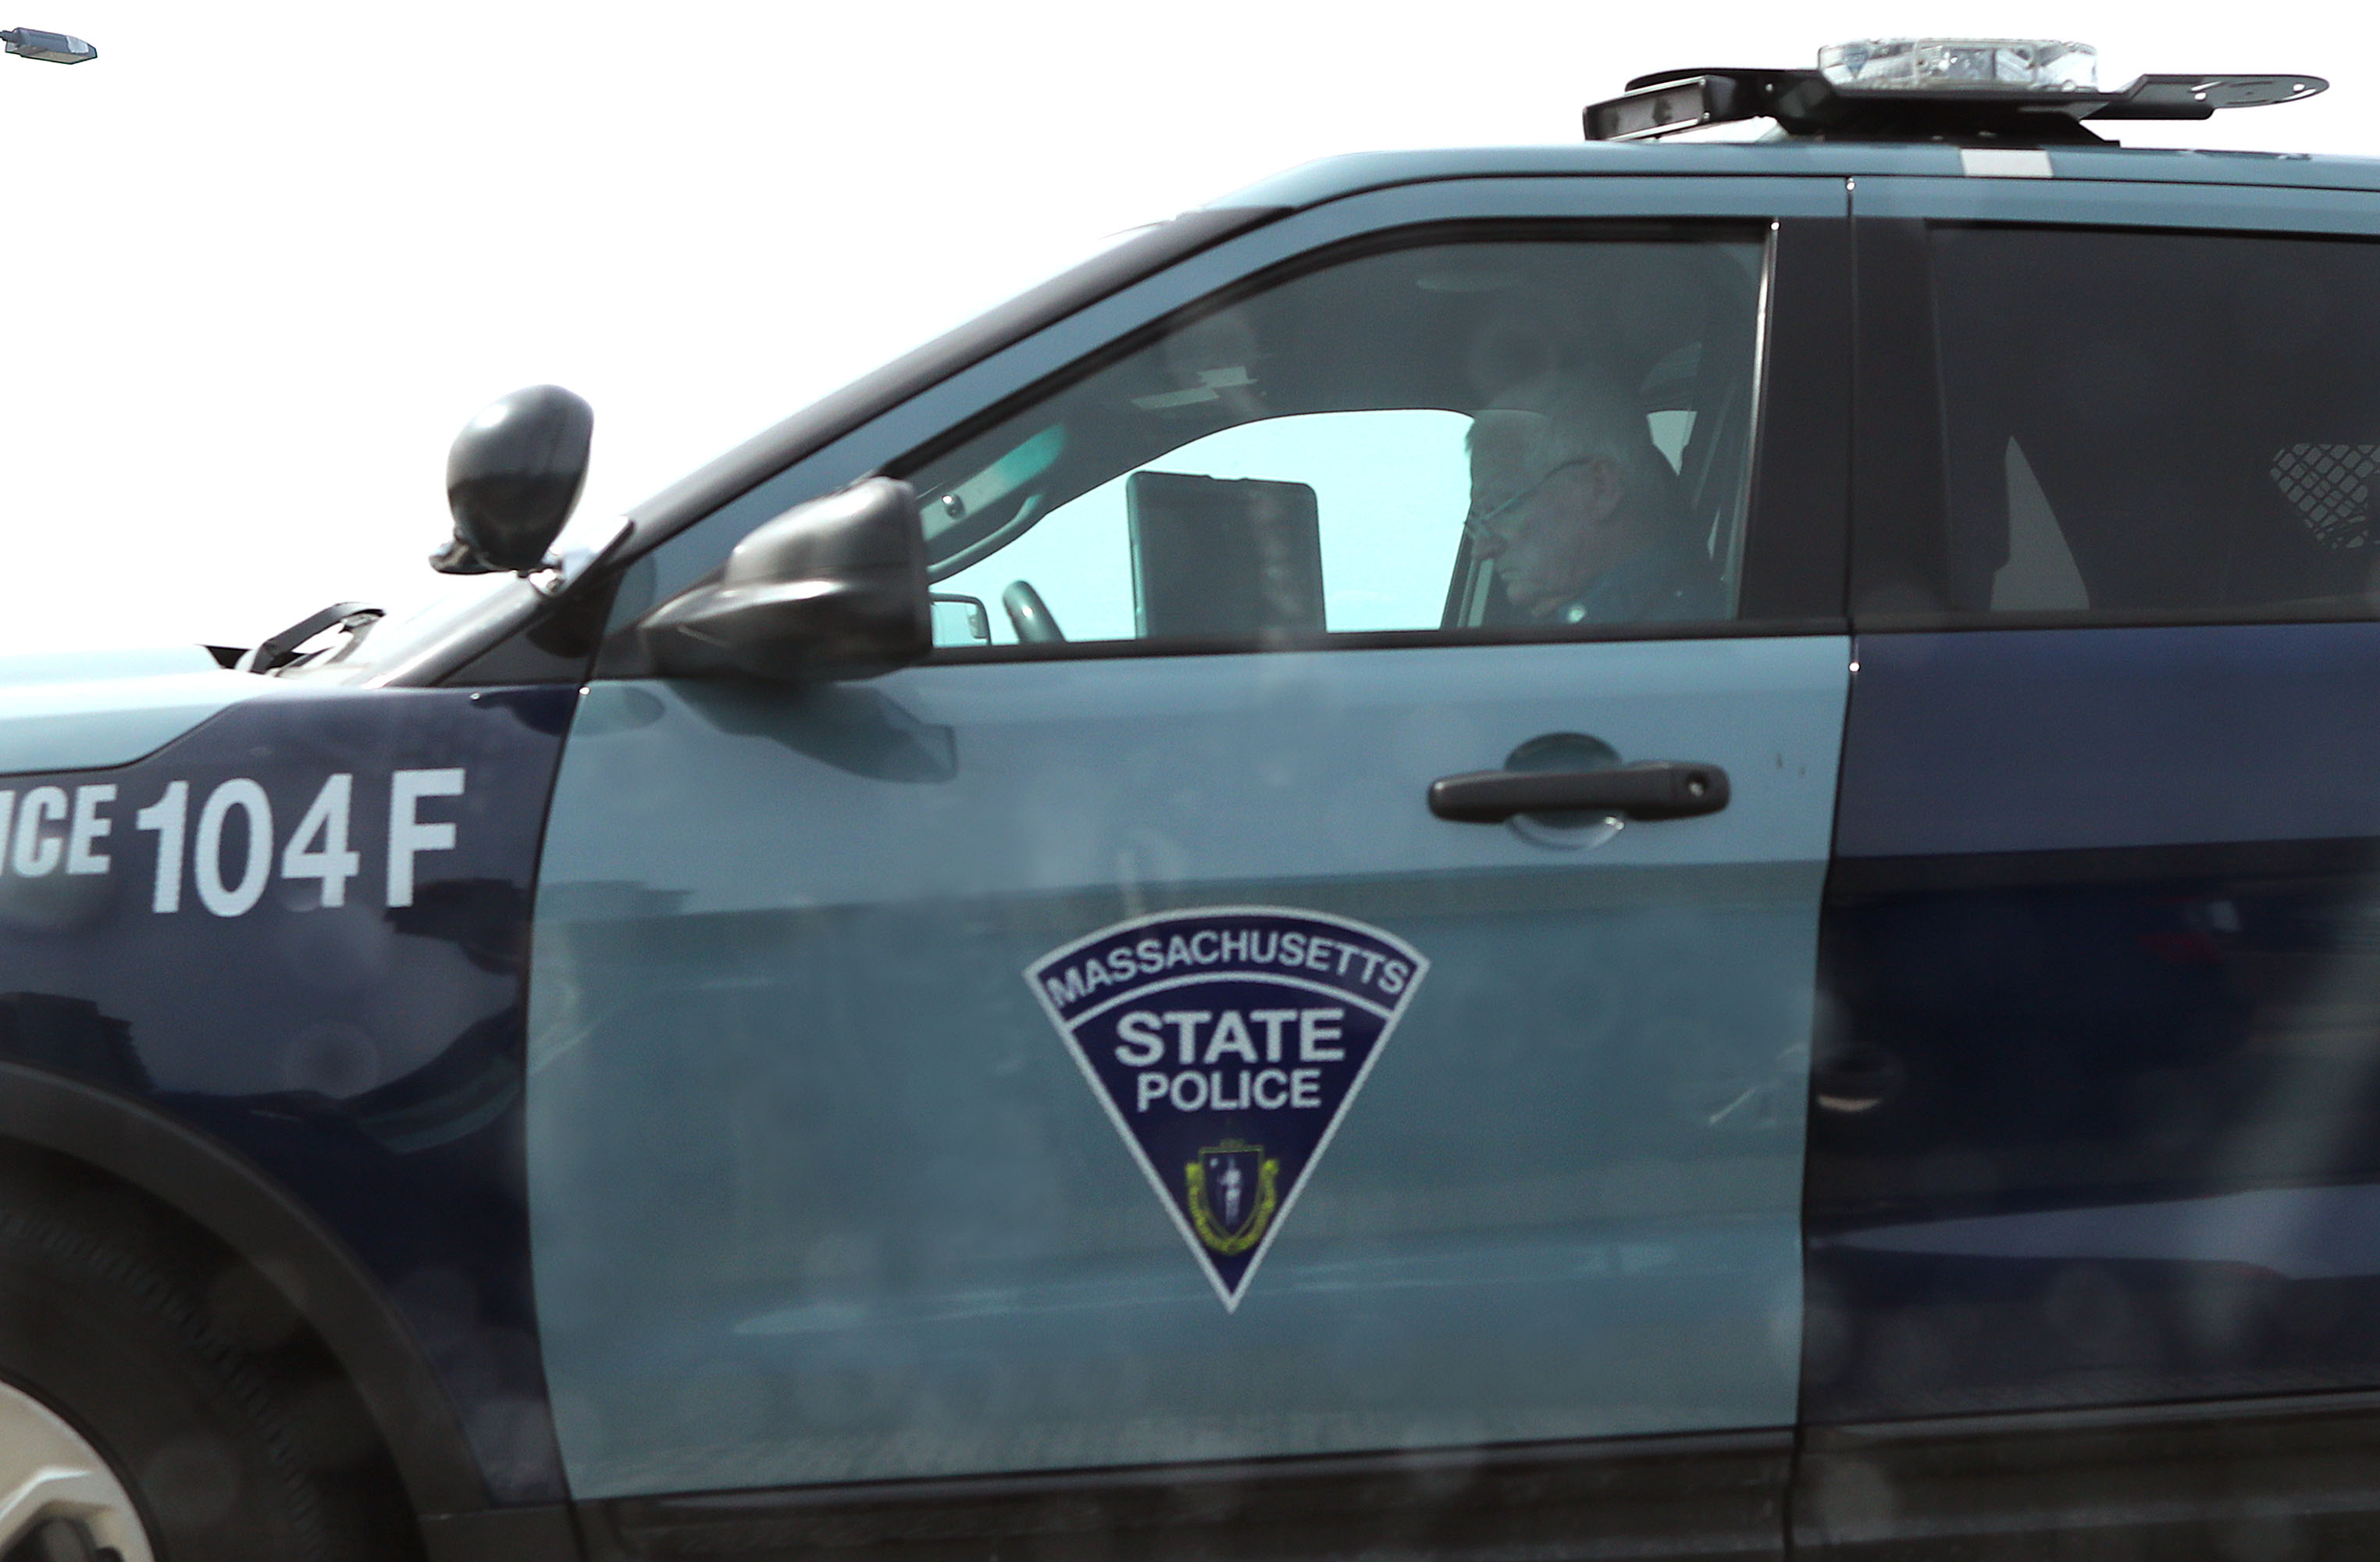 State Police pay higher than reported, data hidden for years